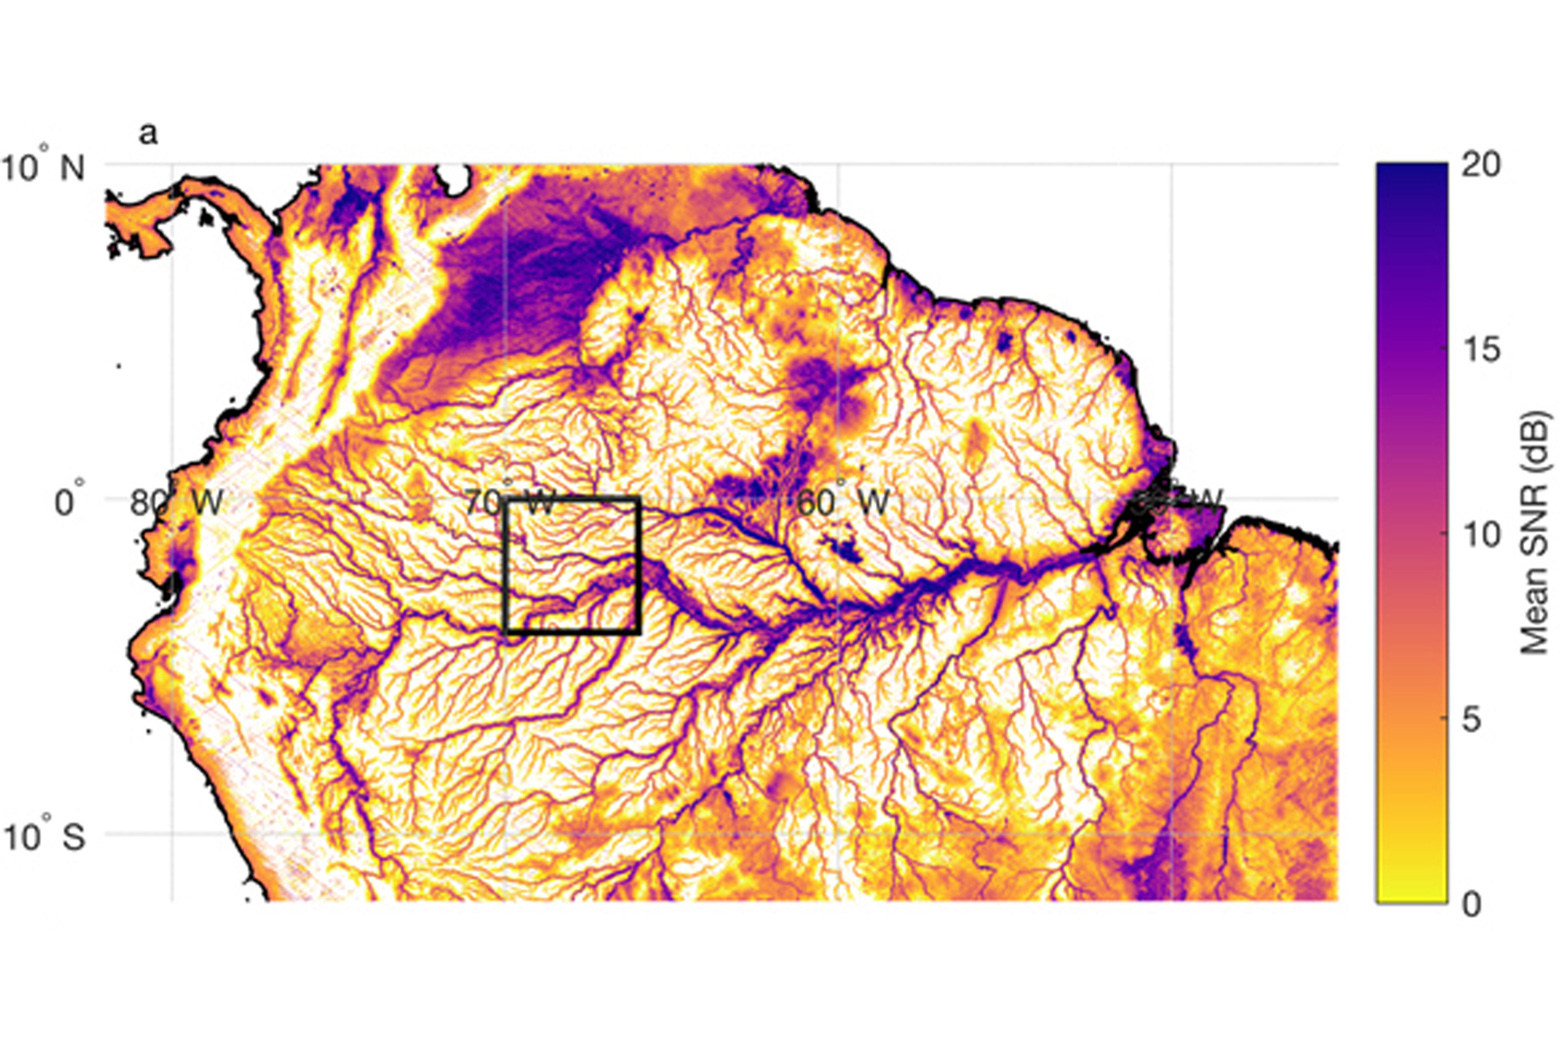 CYGNSS land imagery of the Amazon River basin in South America.